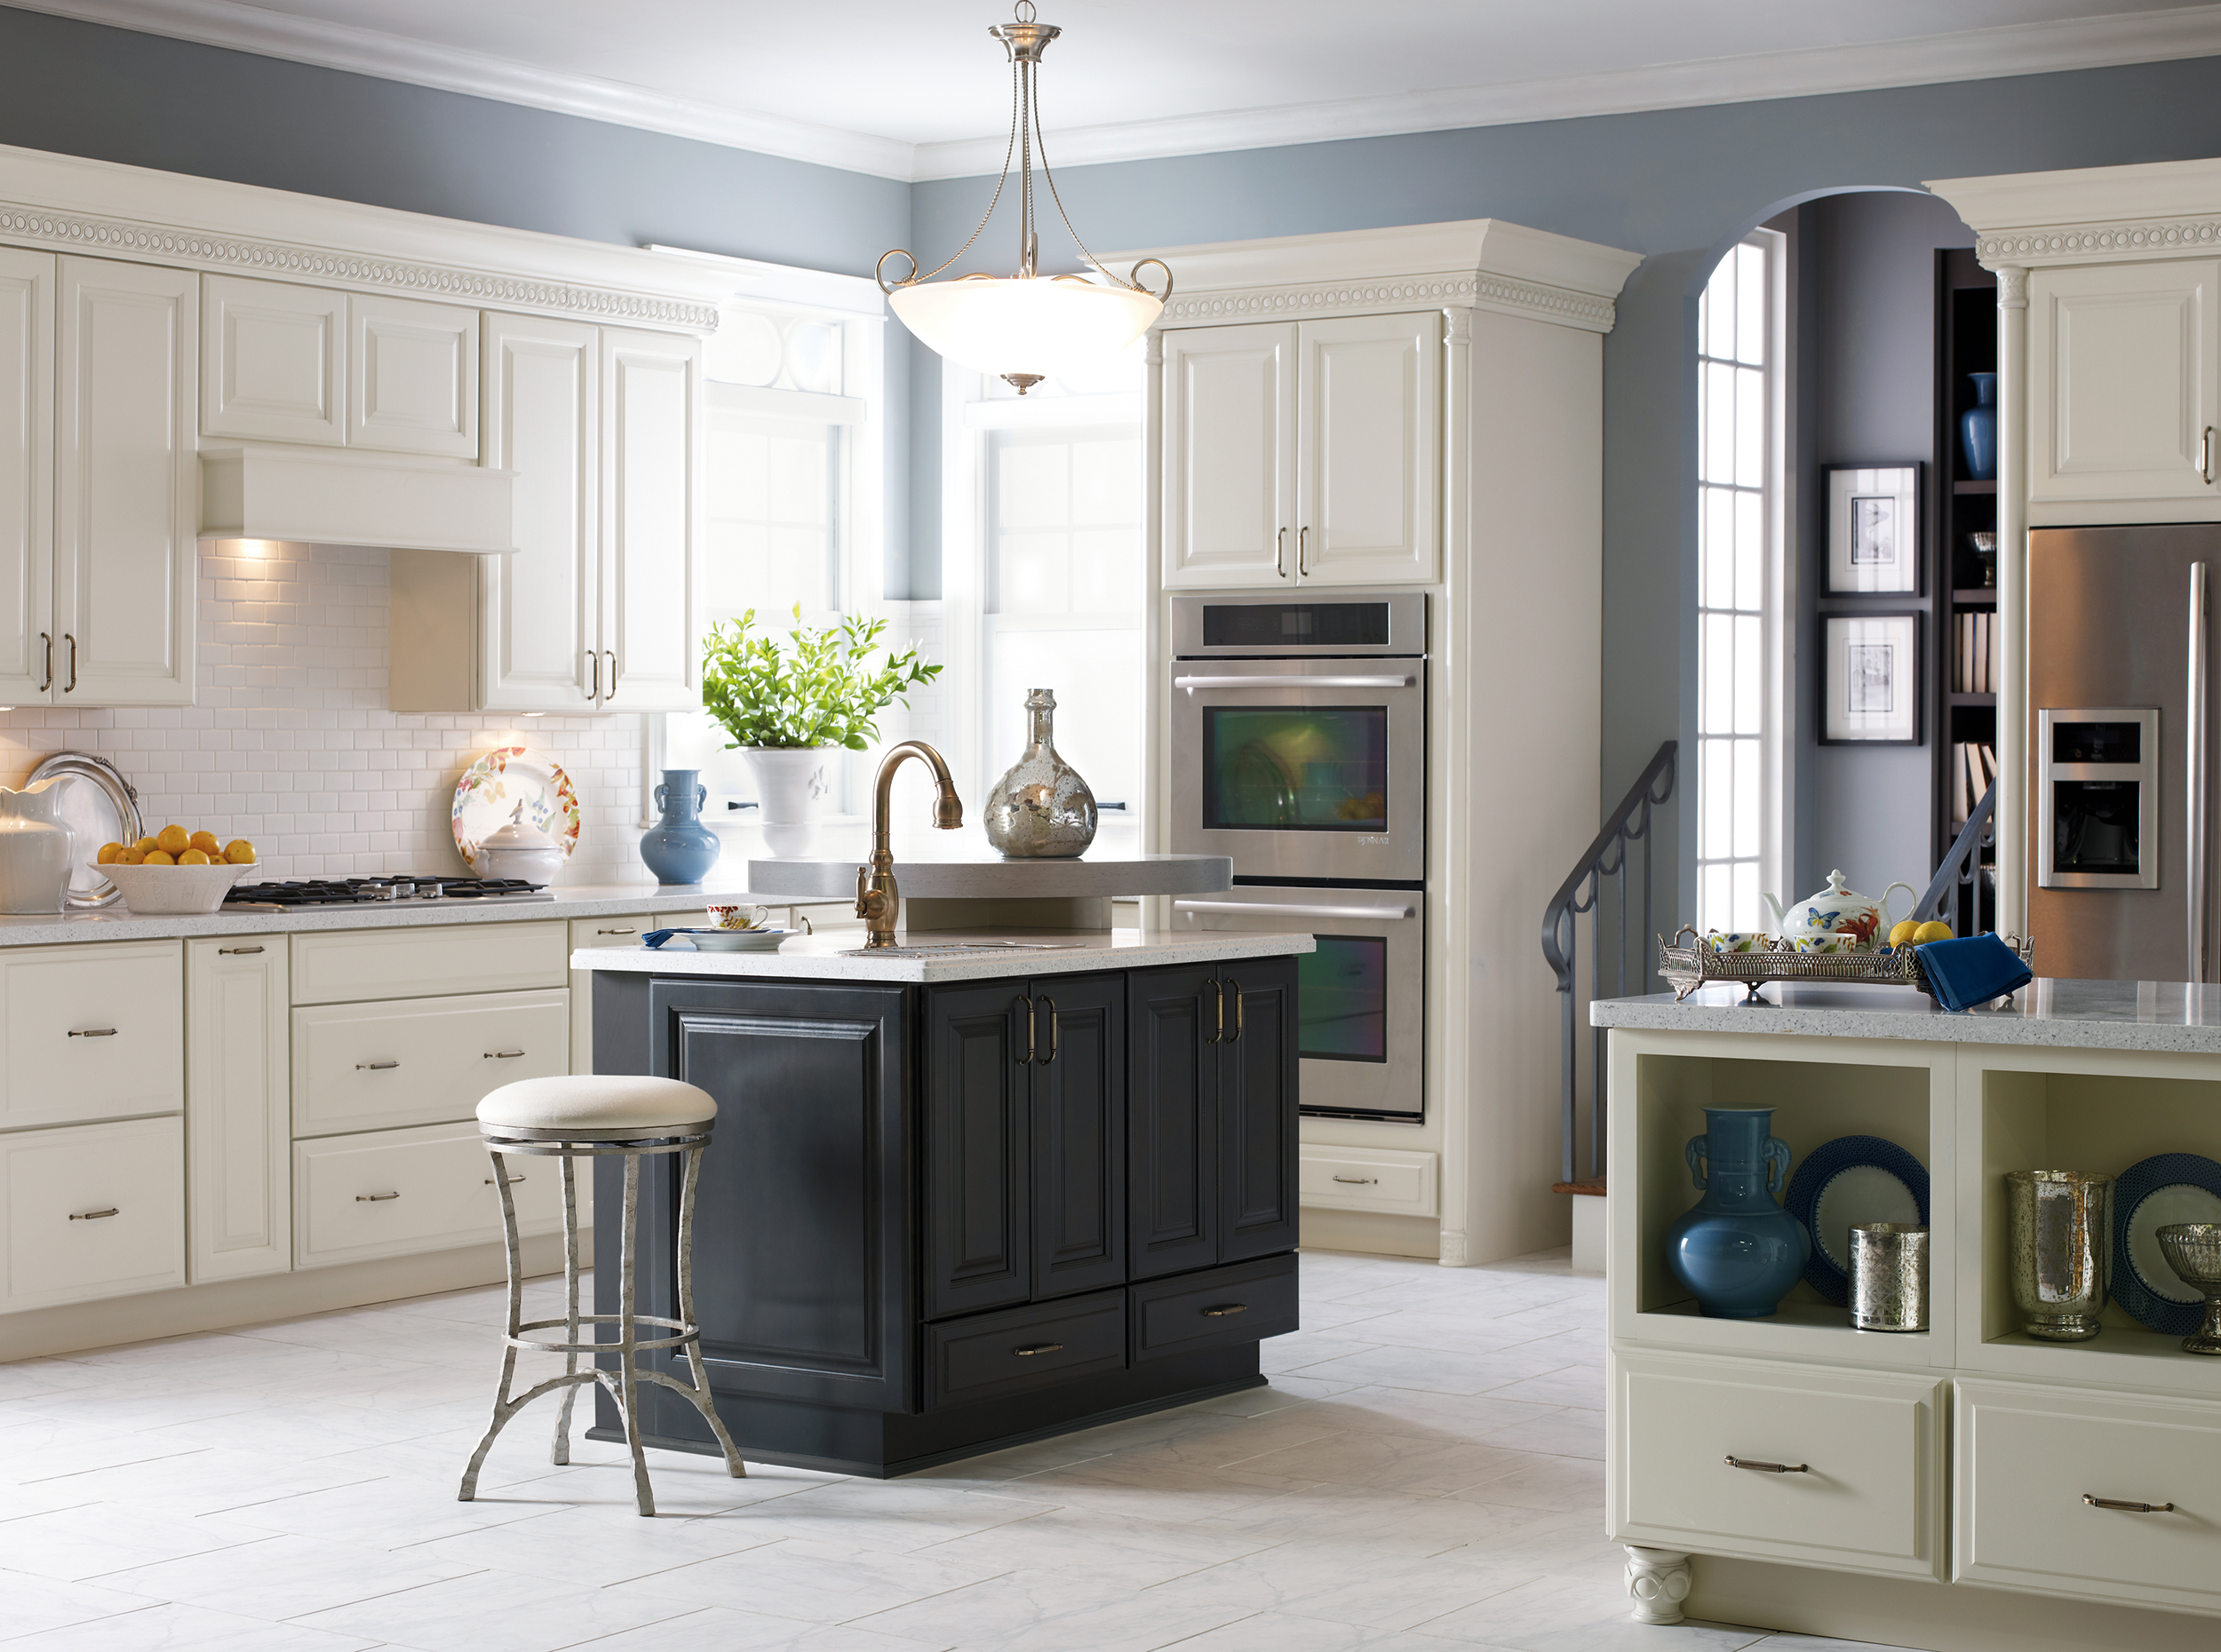 diamond kitchen and bath diamond kitchen cabinets Diamond Kitchen And Bath Pa Reviews Cliff Kitchen Diamond Kitchen and Bath